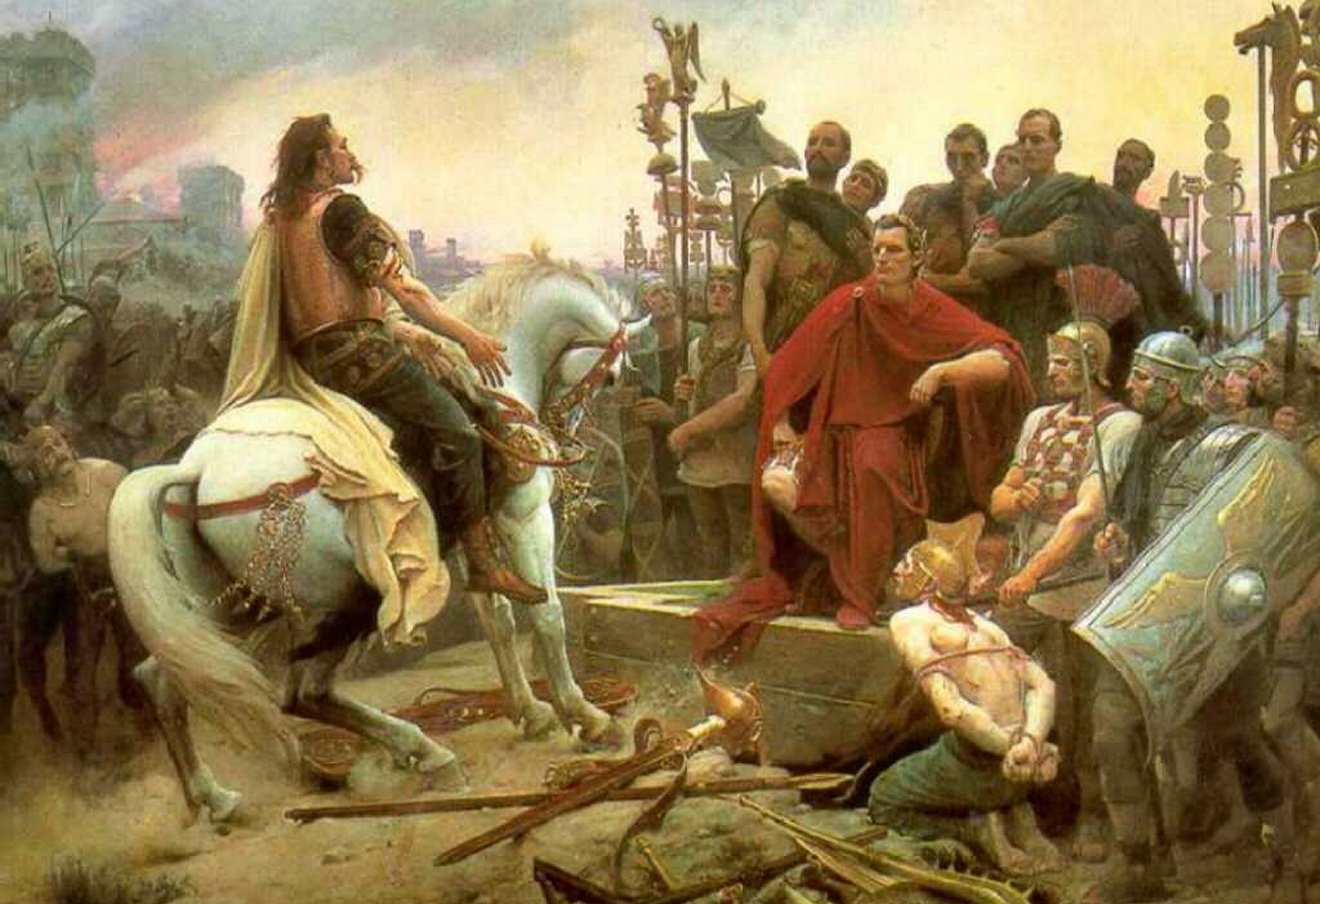 julius caesar the life of a leader of rome What would julius caesar do wikimedia commons after eliminating his rivals in a civil war, general and politician gaius julius caesar began serving as dictator of rome in 49 bce.